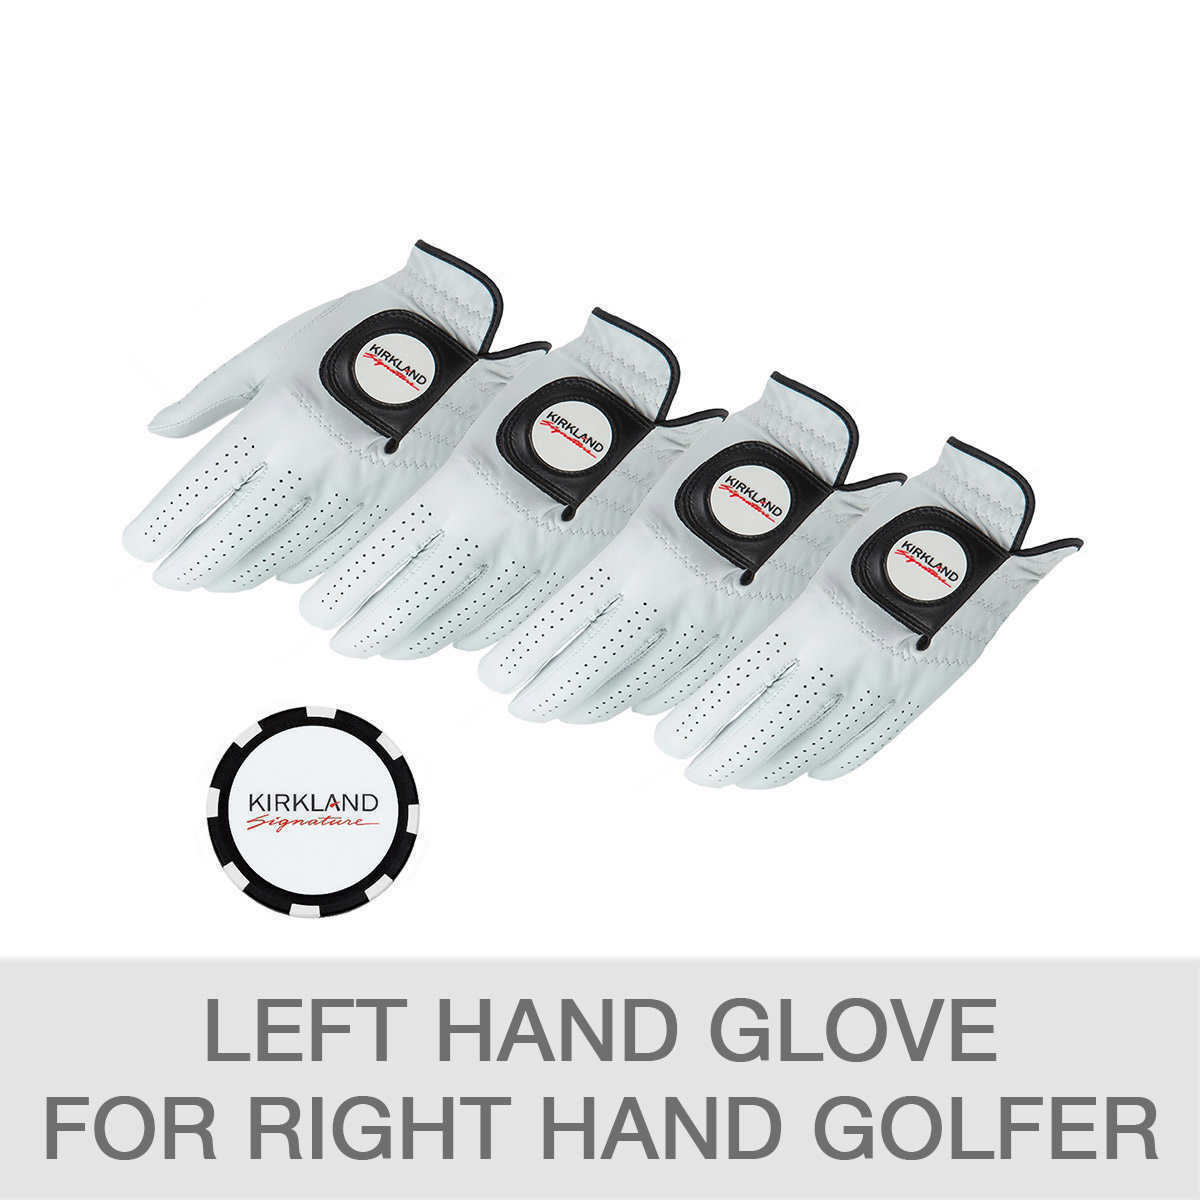 Primary image for Kirkland Signature Leather Golf Glove with Ball Marker, 4-pack